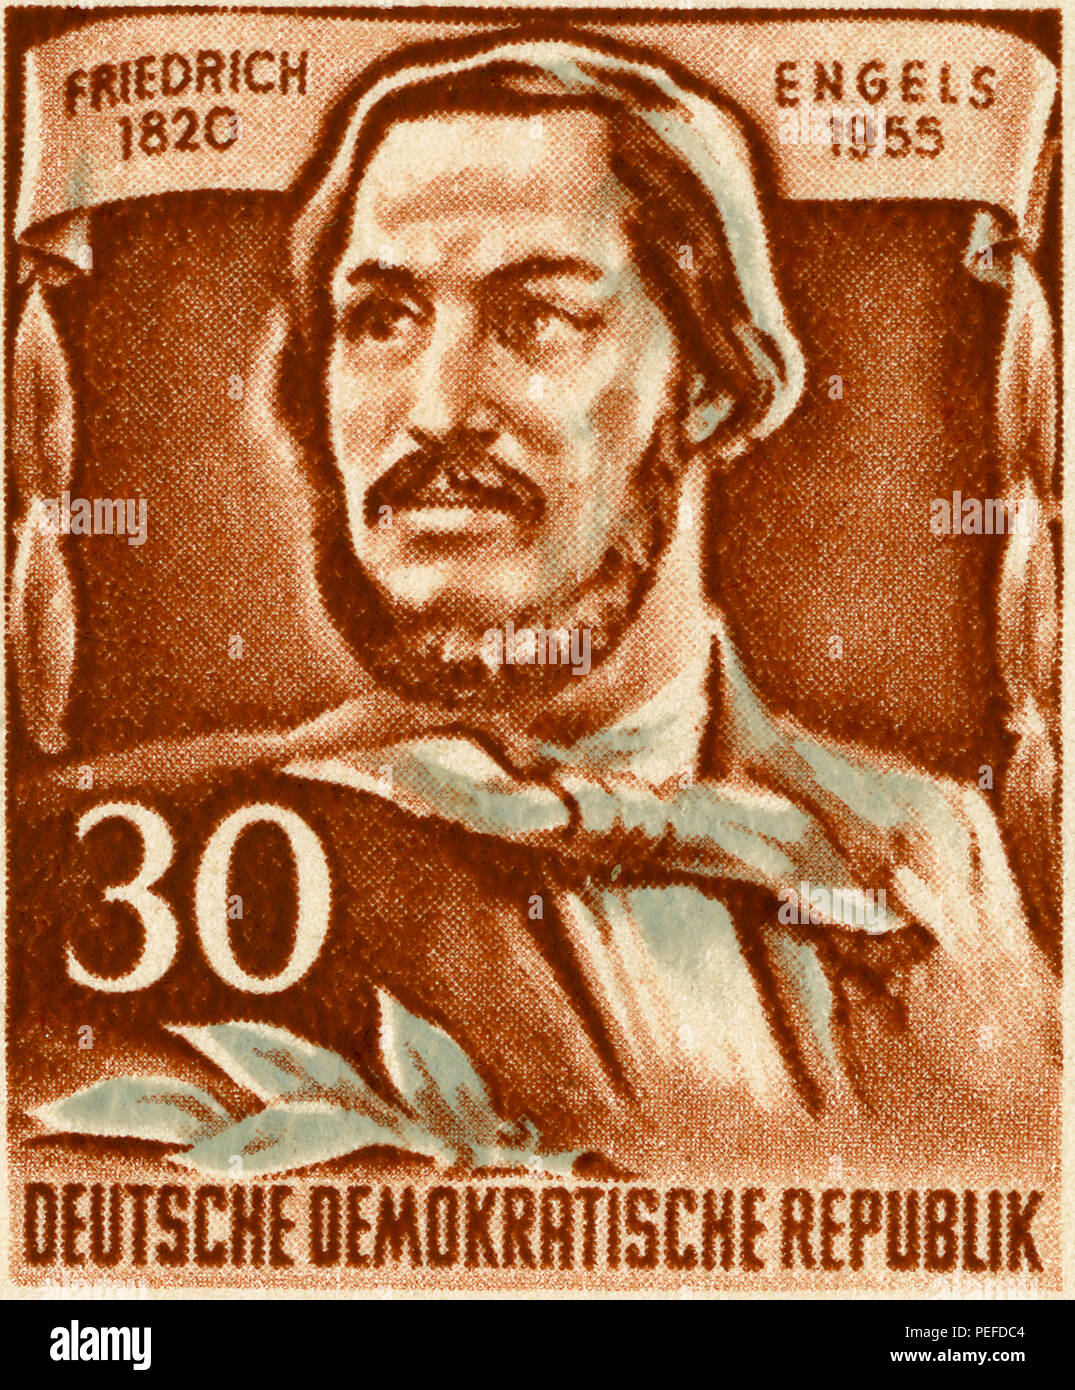 Friedrich Engels Commemorative Postage Stamp, East Germany, DDR, 1955 - Stock Image